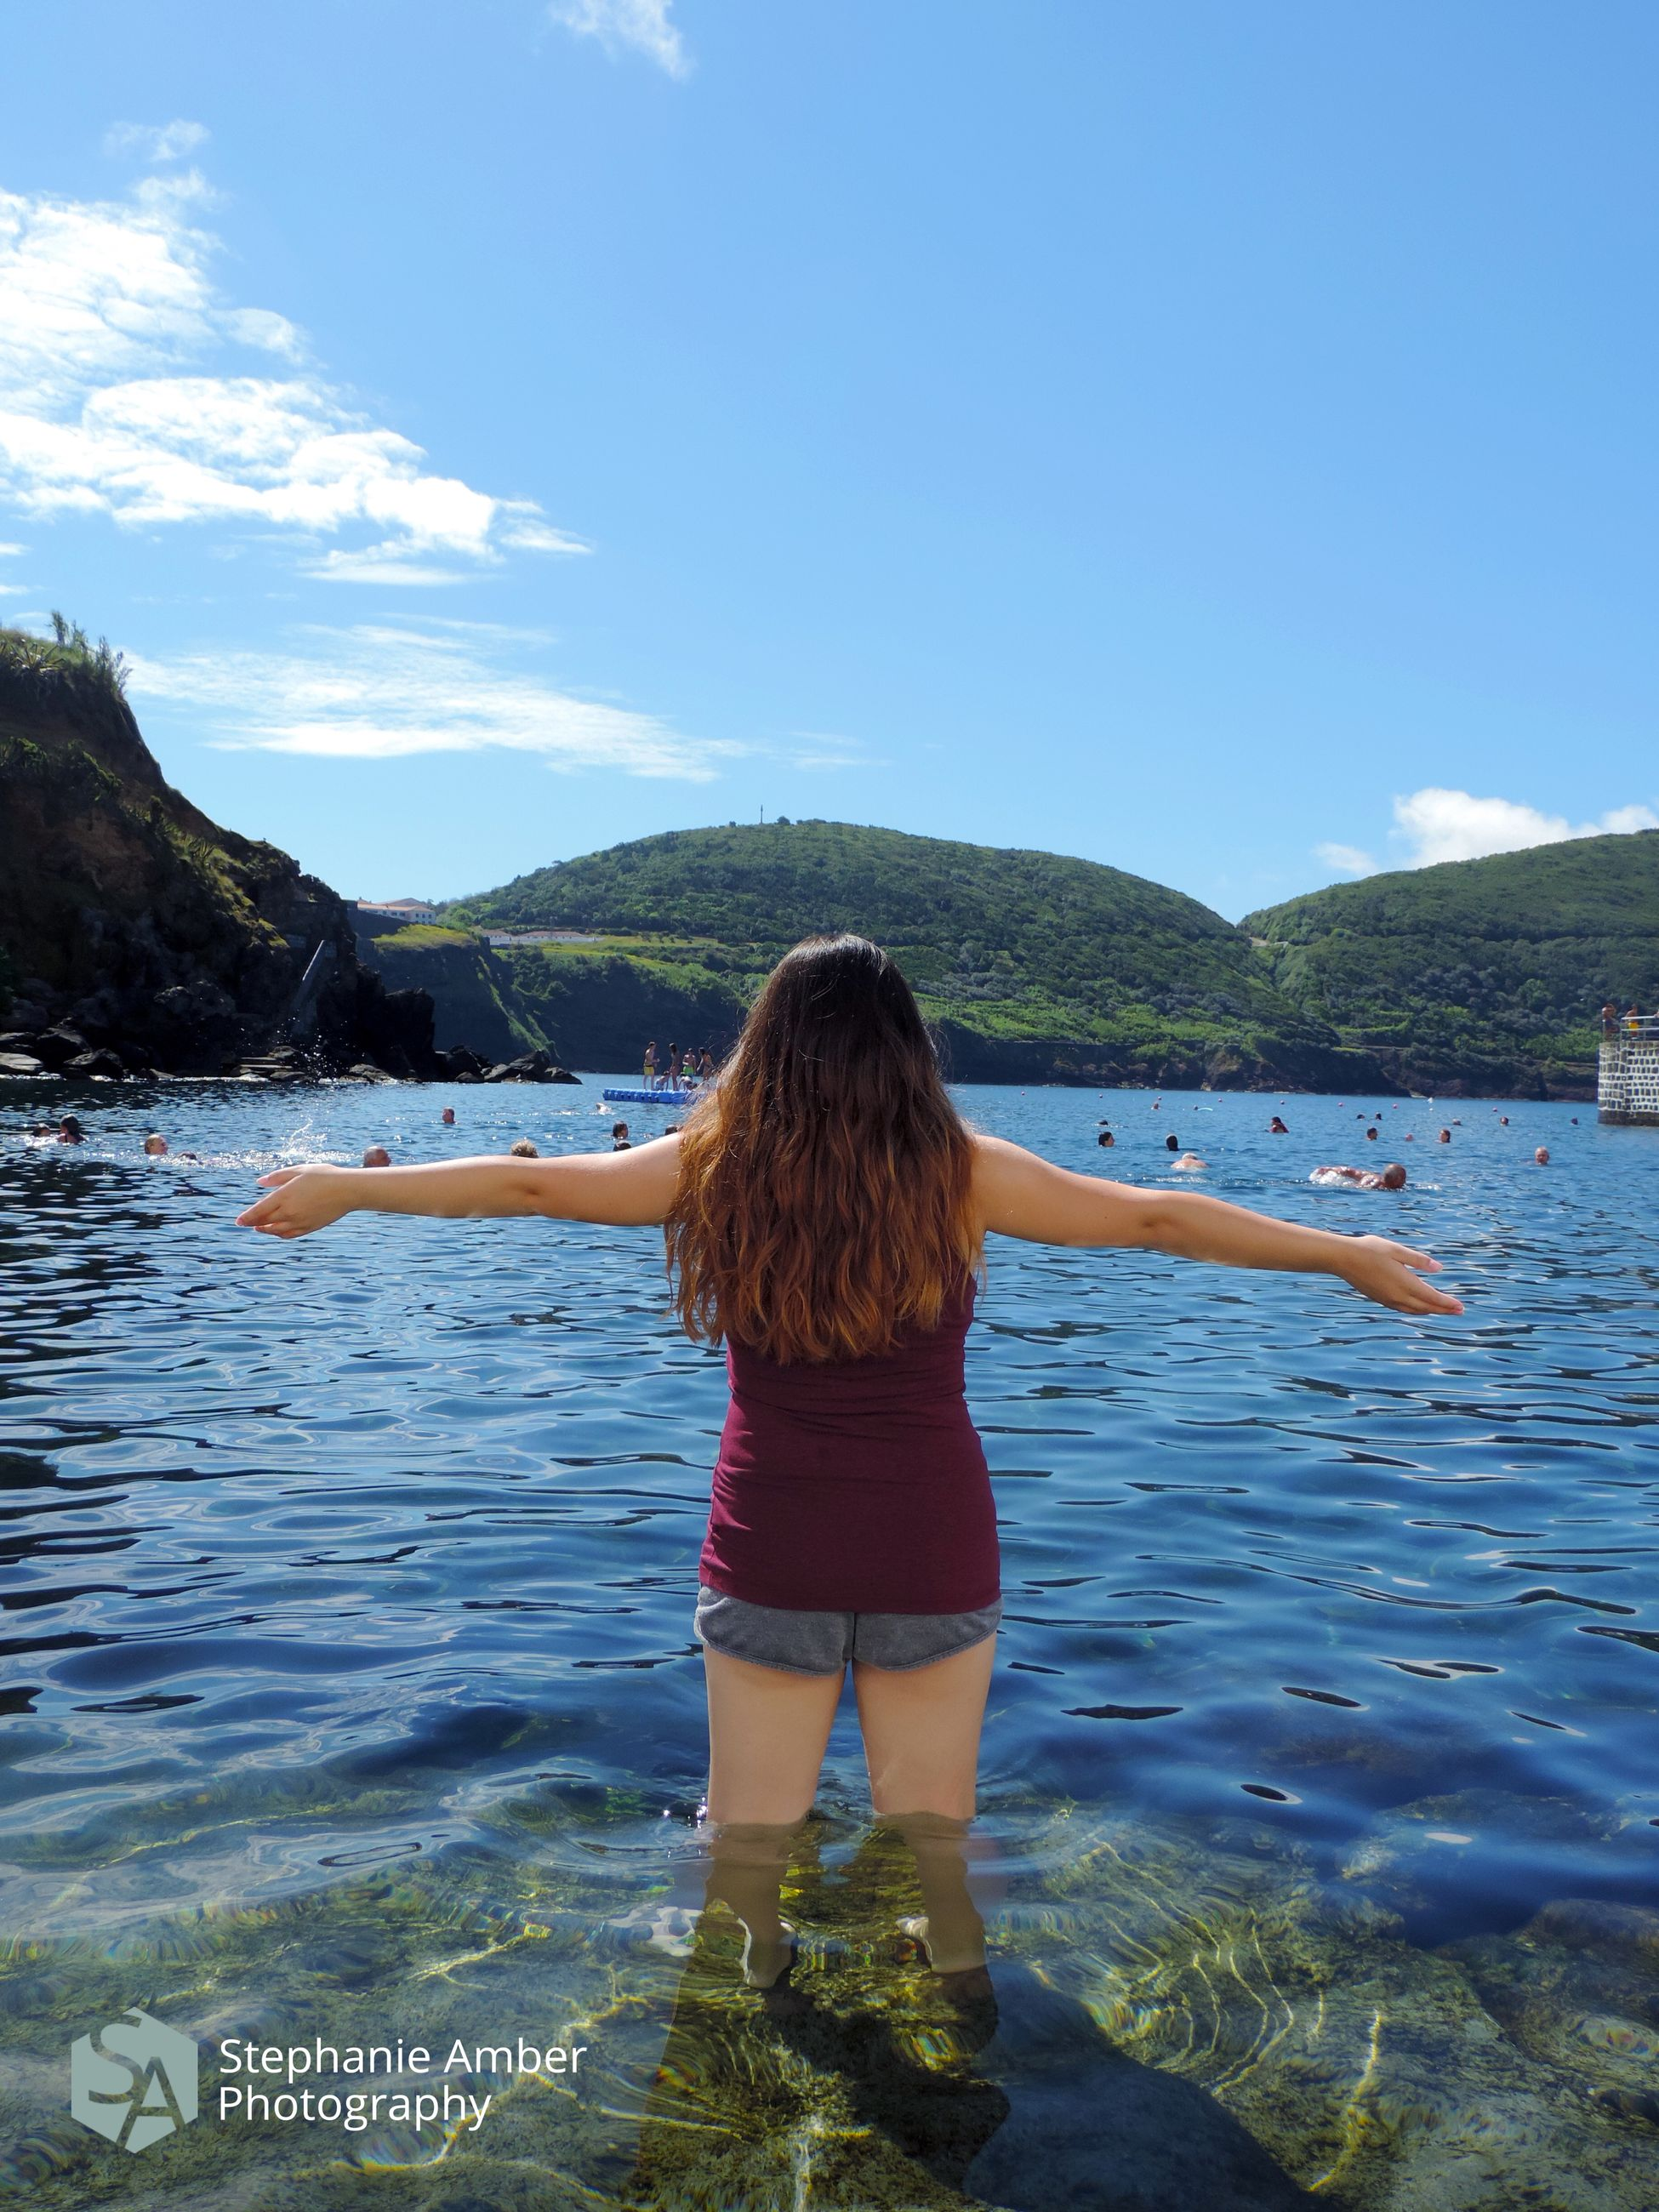 water, one person, rear view, leisure activity, real people, mountain, human arm, lifestyles, sky, beauty in nature, scenics - nature, women, hairstyle, limb, nature, vacations, trip, long hair, hair, arms outstretched, outdoors, arms raised